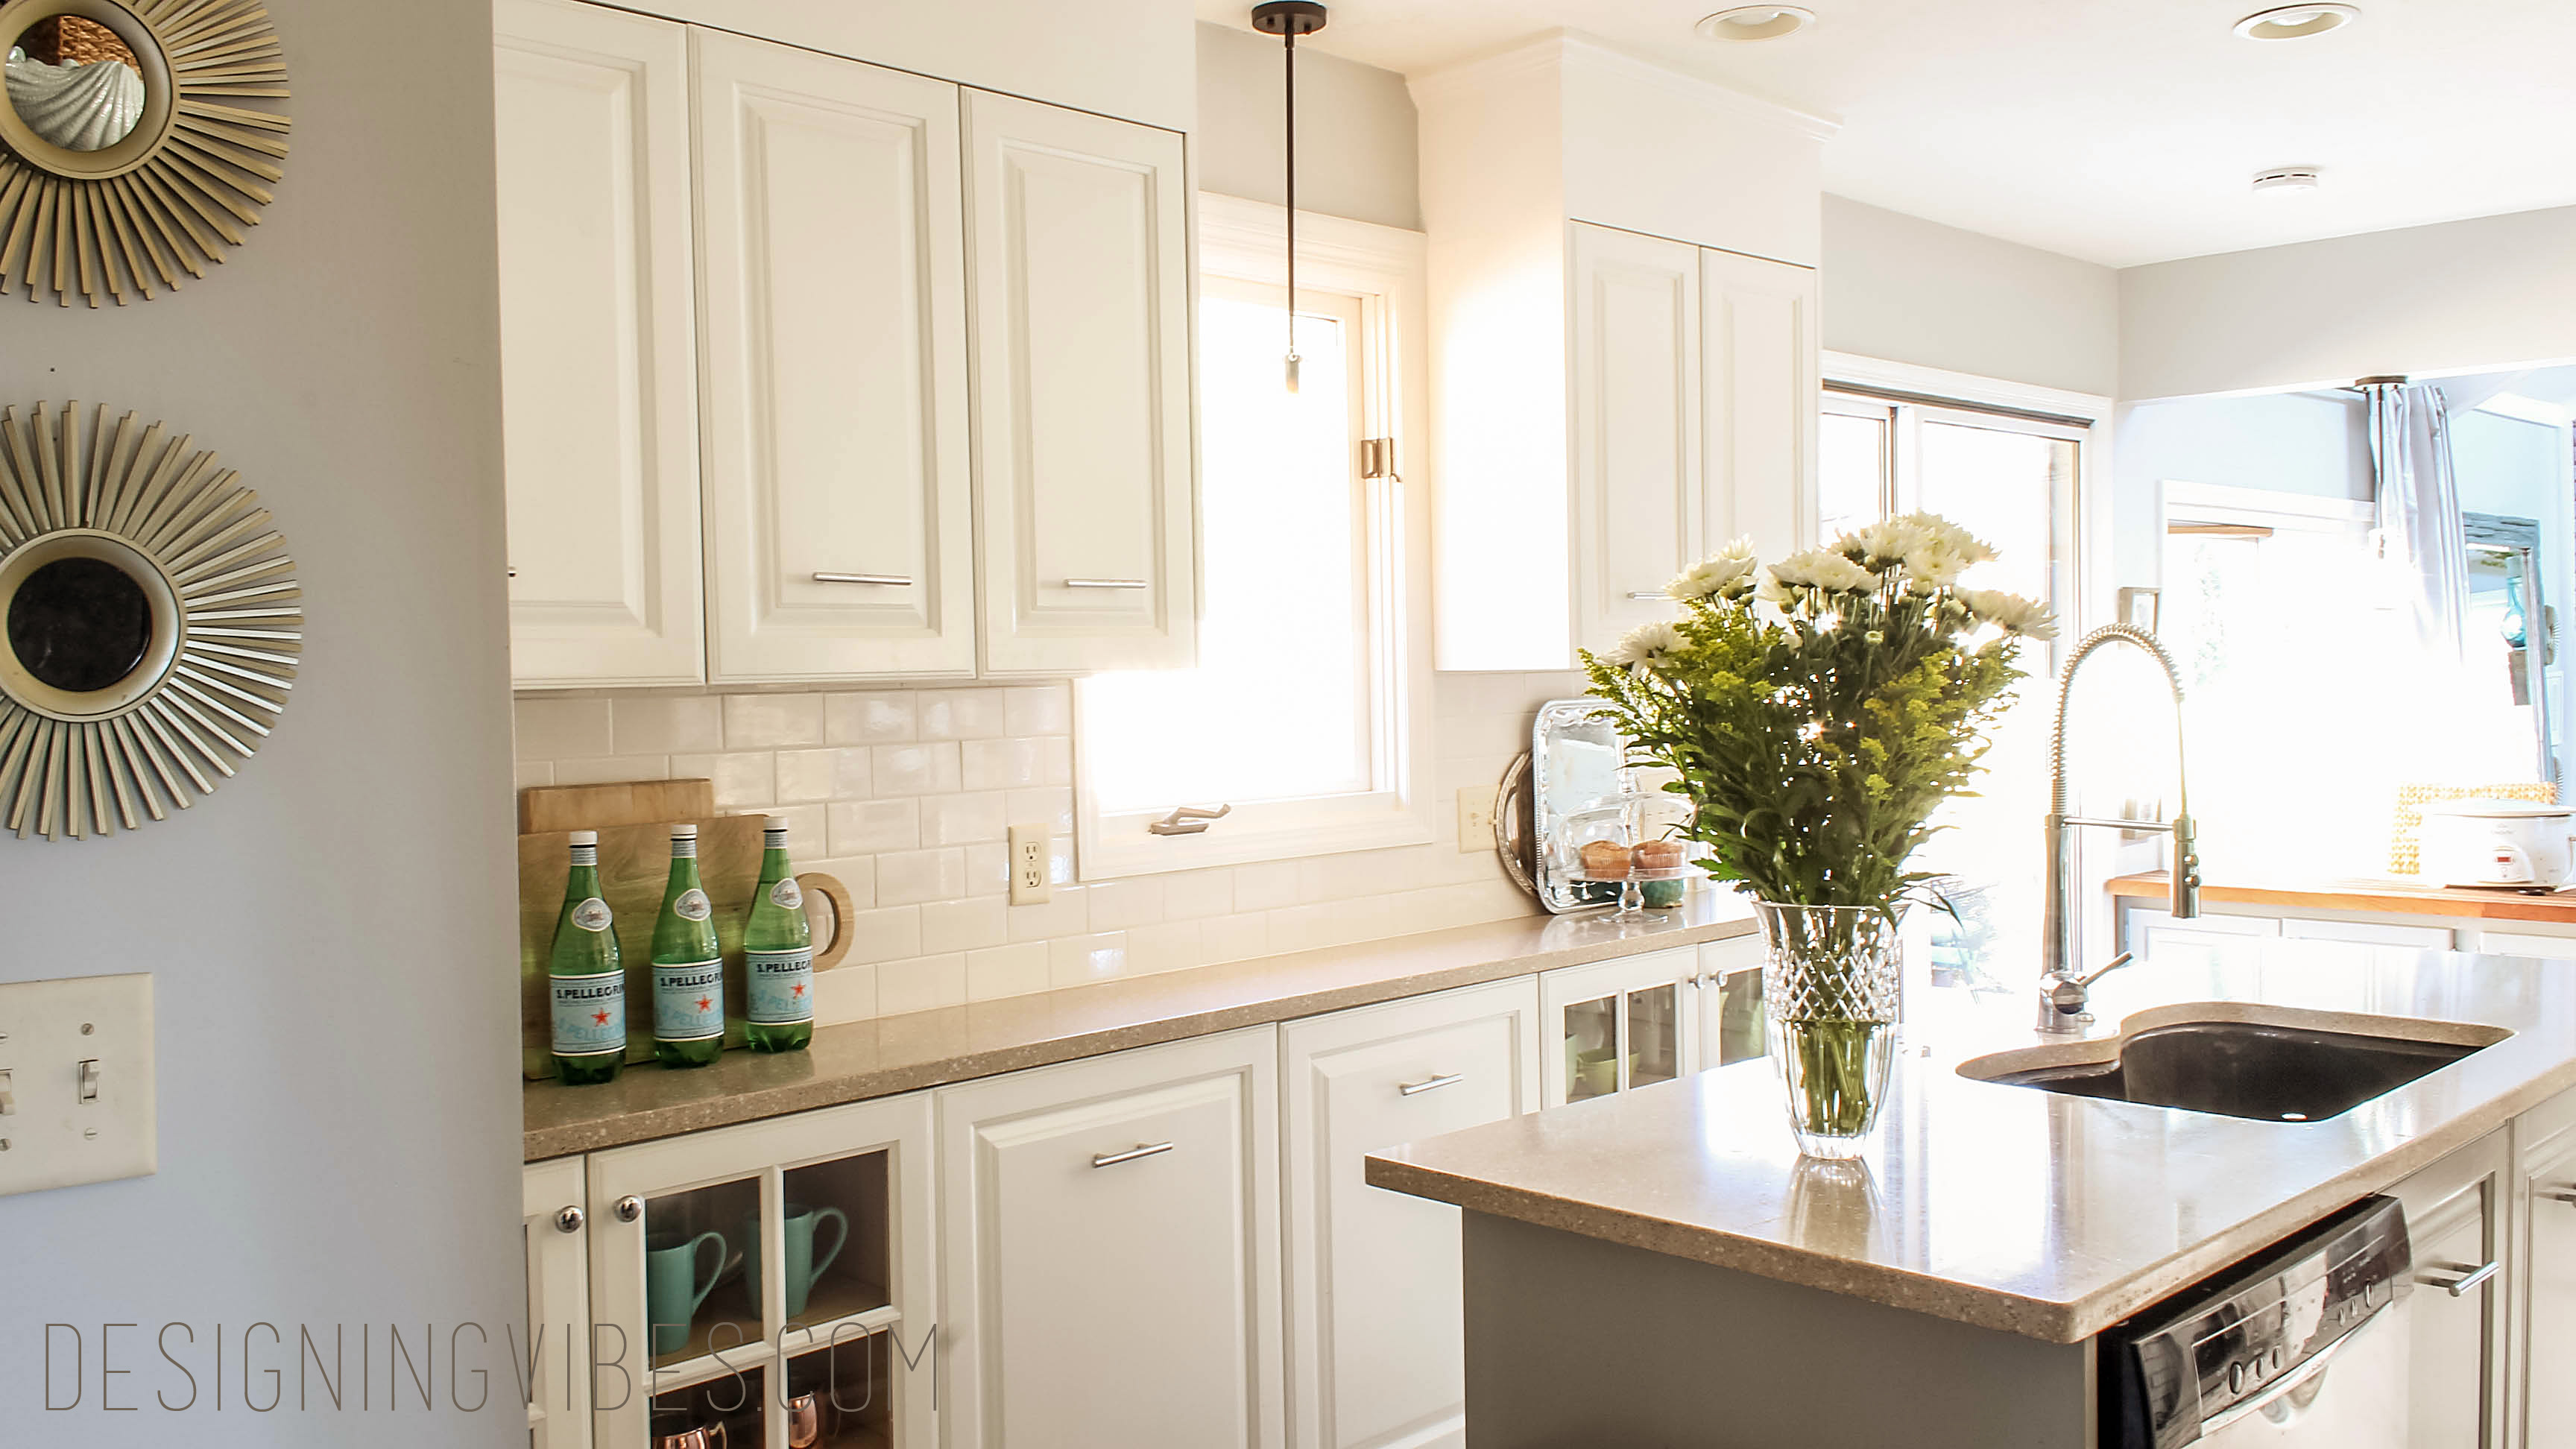 How to Make Kitchen Cabinets Taller - Designing Vibes - Interior ...